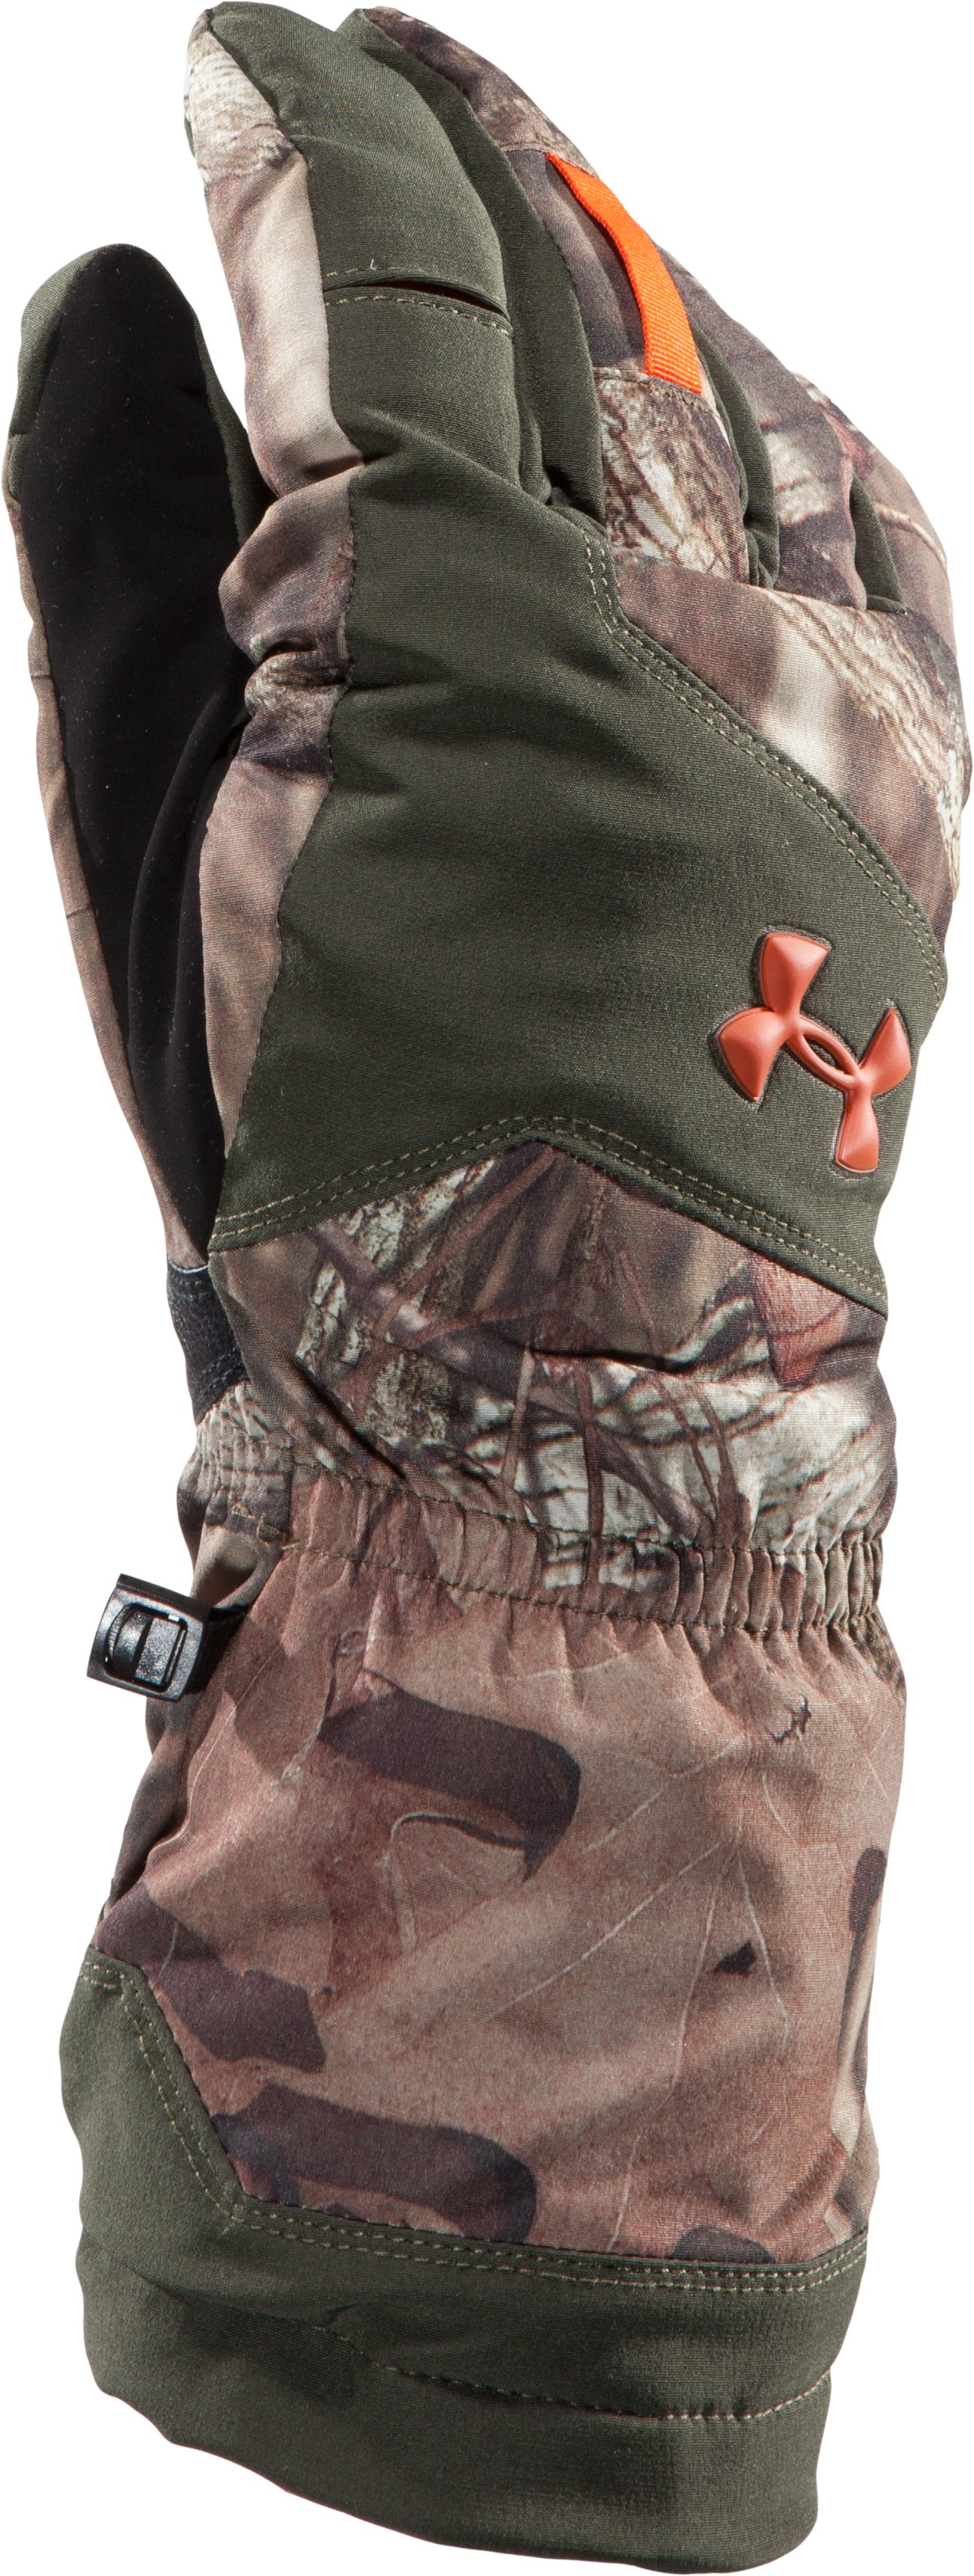 Men's ColdGear® Infrared Gunpowder Gloves, Mossy Oak Break-Up Infinity,